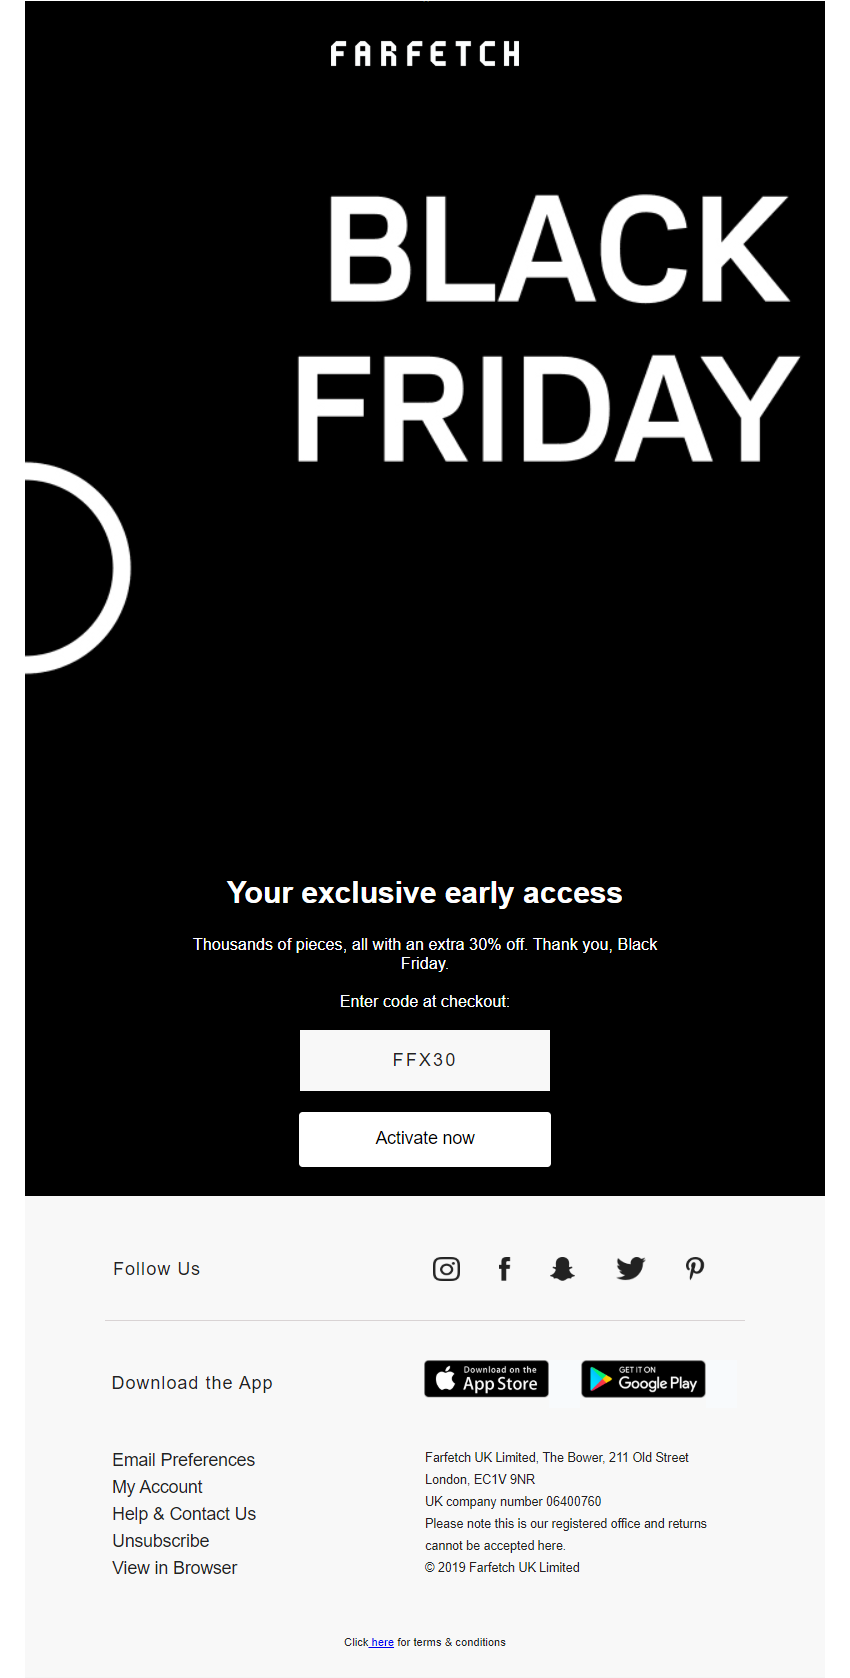 Black Friday early access email from Farfetch